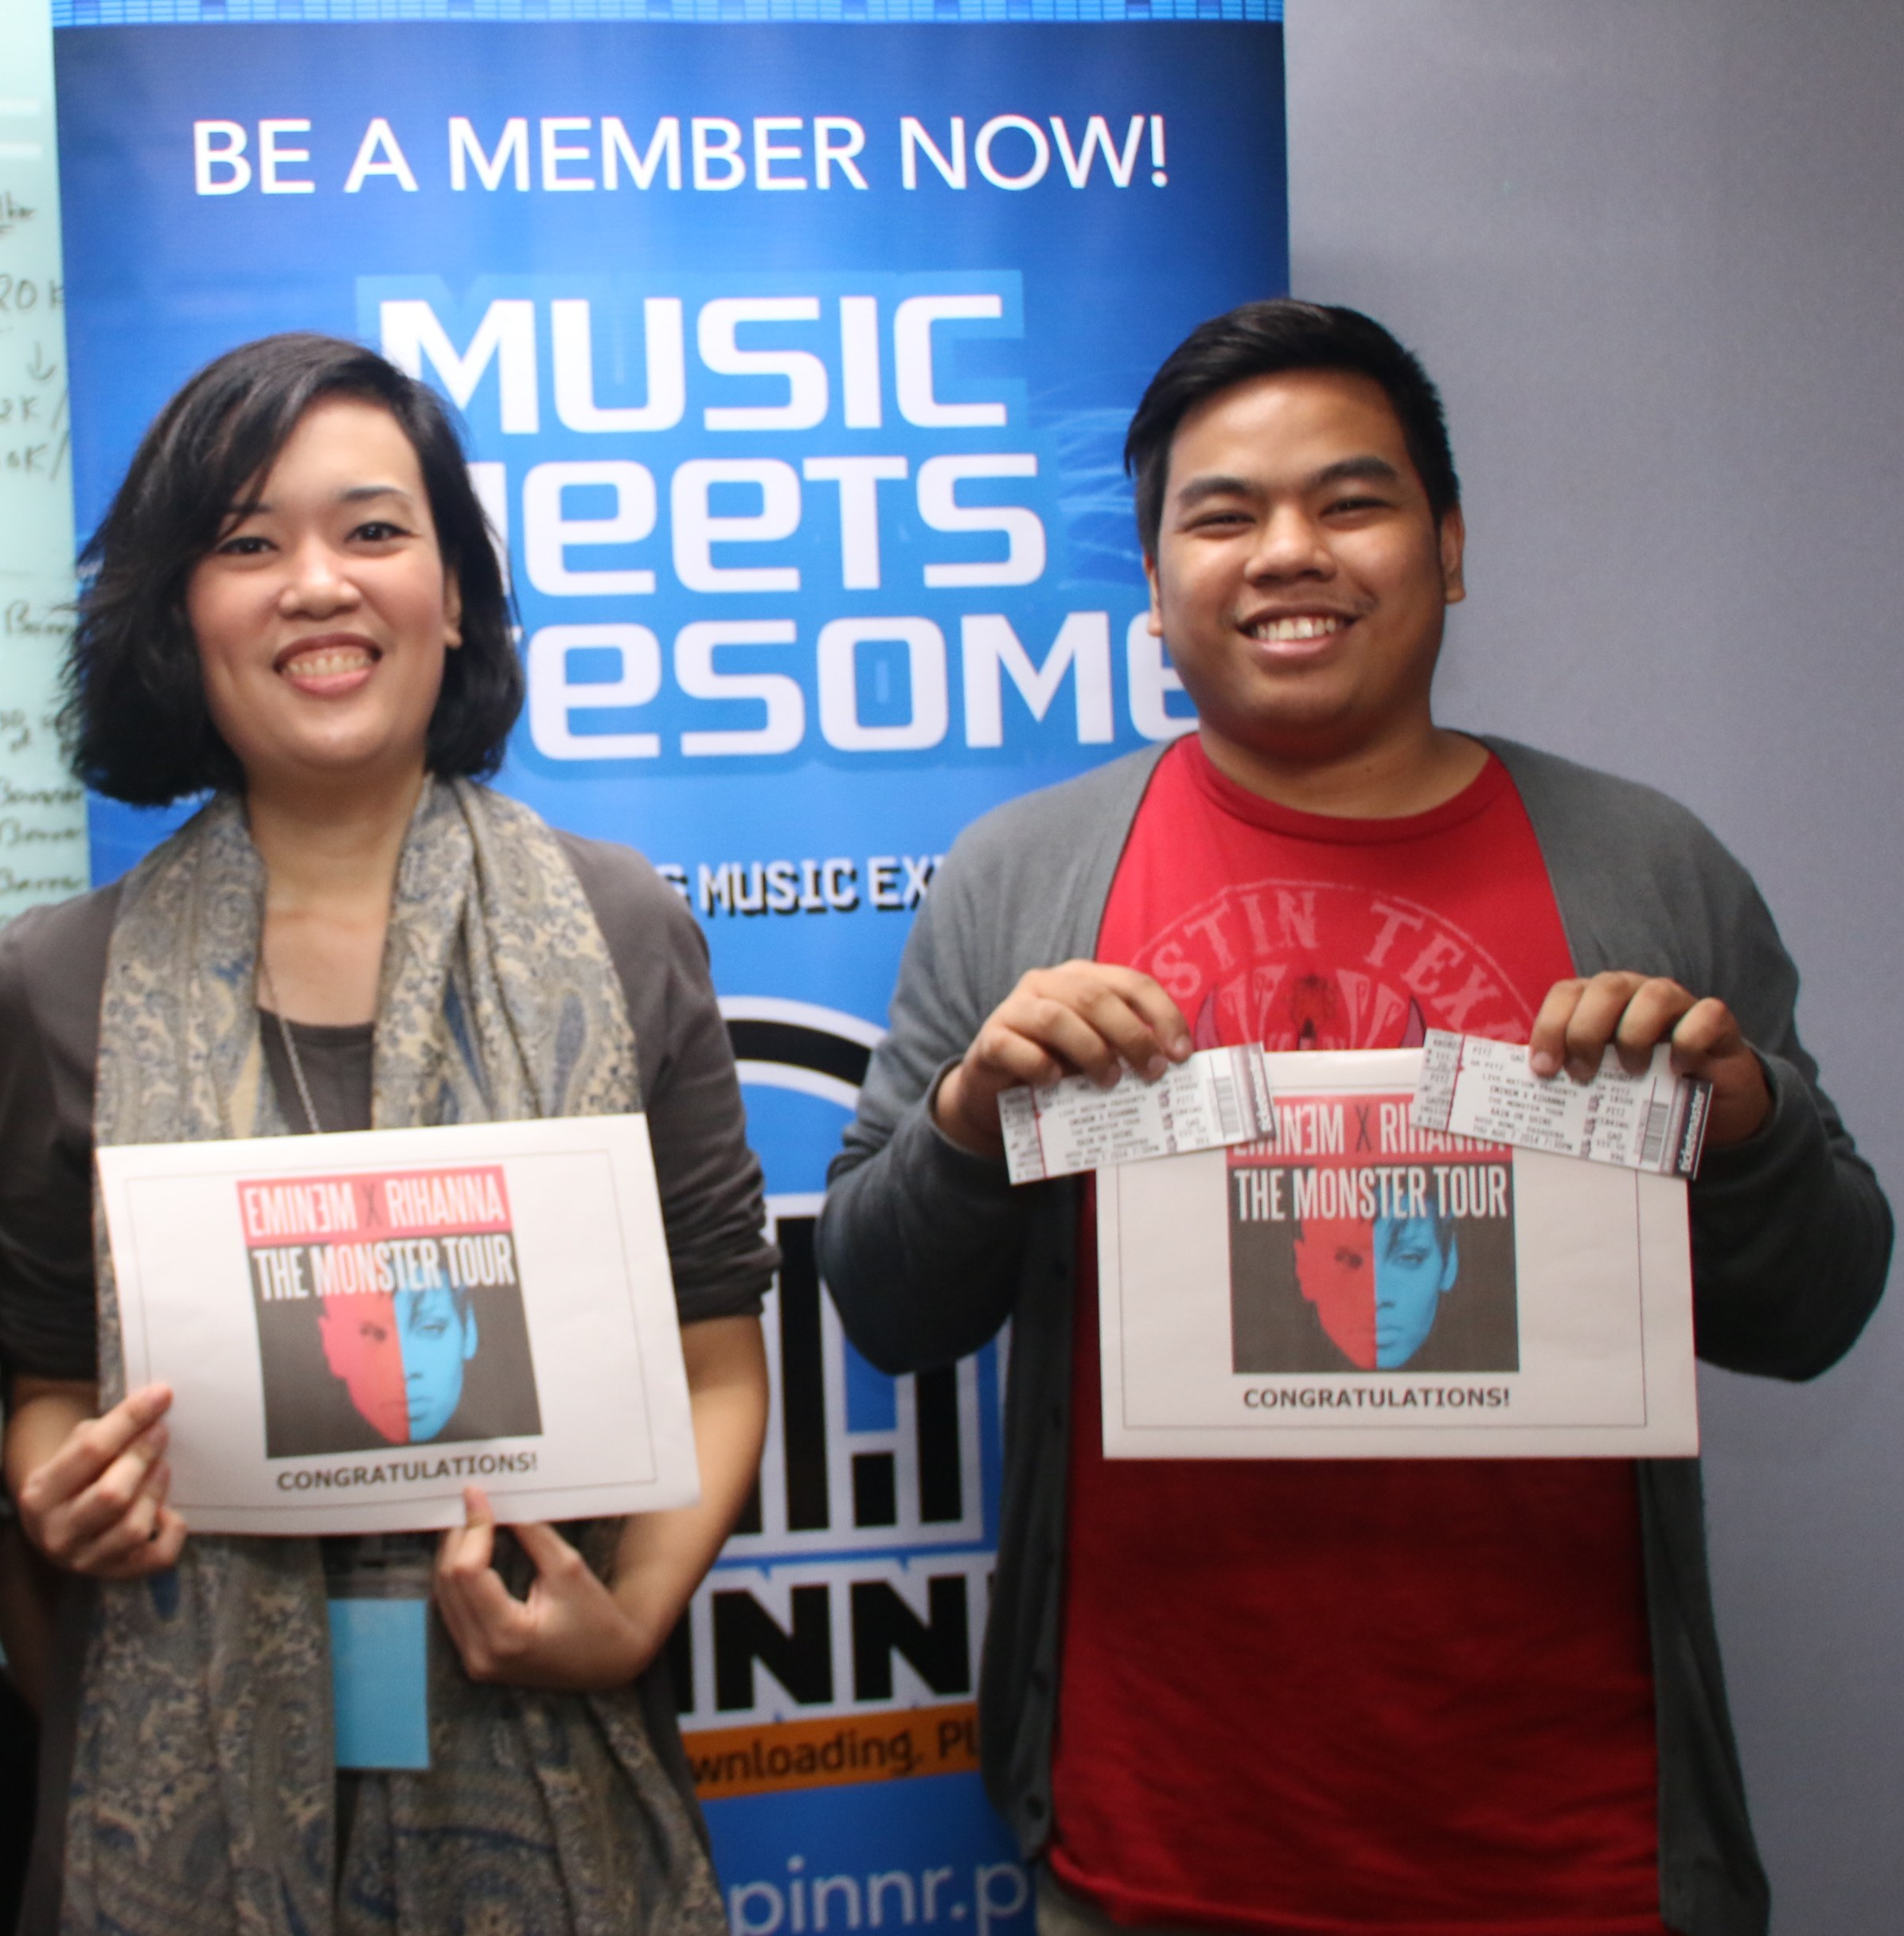 Winners of spinnr promo fly to la for eminem rihanna concert dawn jalandoni left and choi padilla win vip tickets to eminem and rihannas monster tour concert in la m4hsunfo